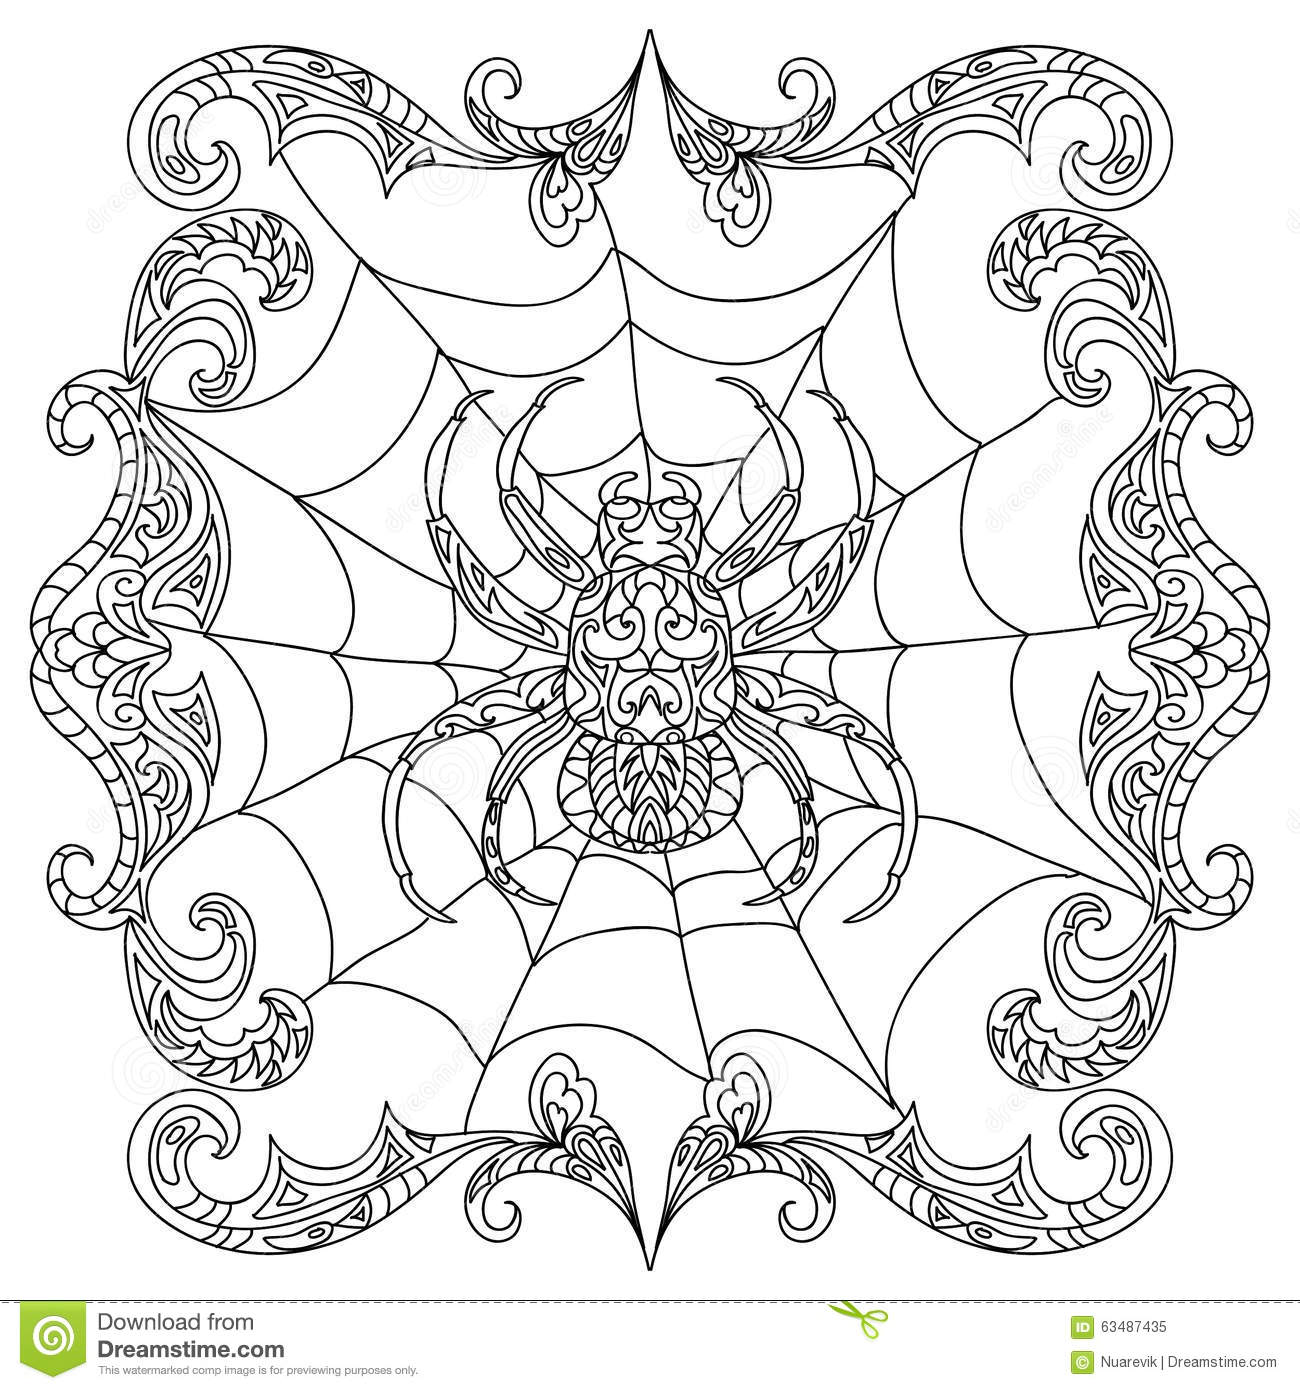 Minecraft Coloring Pages in addition Bee Coloring Pages also Monarch Butterfly 0 likewise Stock Illustration Spider Zentangle Coloring Page Isolated White Image63487435 furthermore Printable Coloring Pages Smiley Faces Free Printable Coloring Pages Smiley Faces For Girl Face Page Pa Coloring Pages Online Unicorn. on insect coloring pages for adults